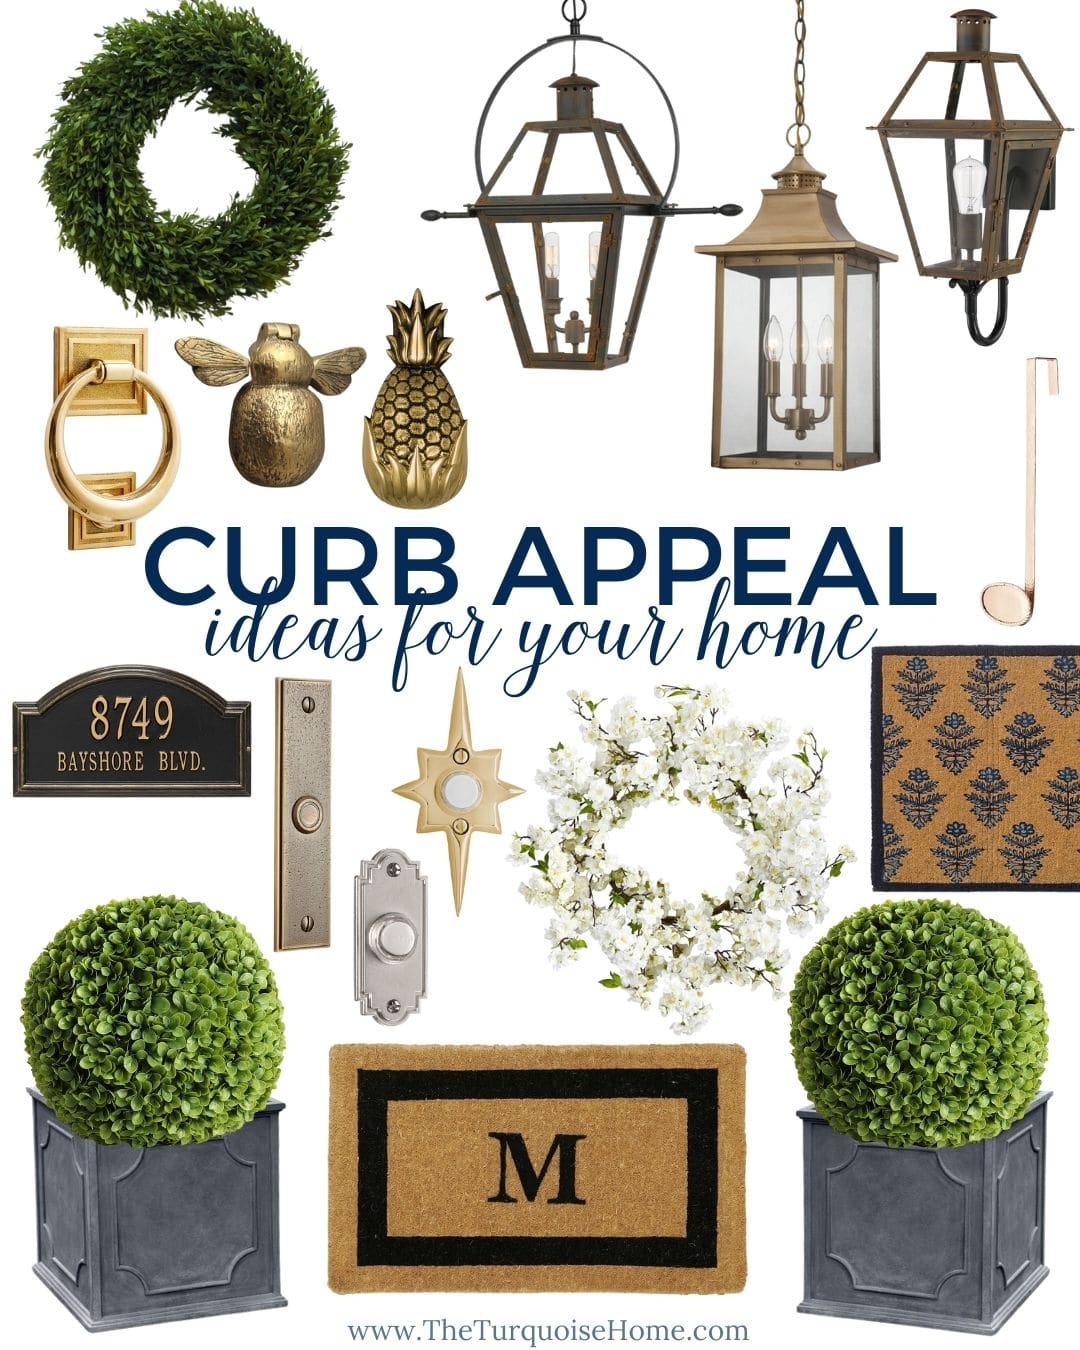 Curb Appeal Ideas for Your Home